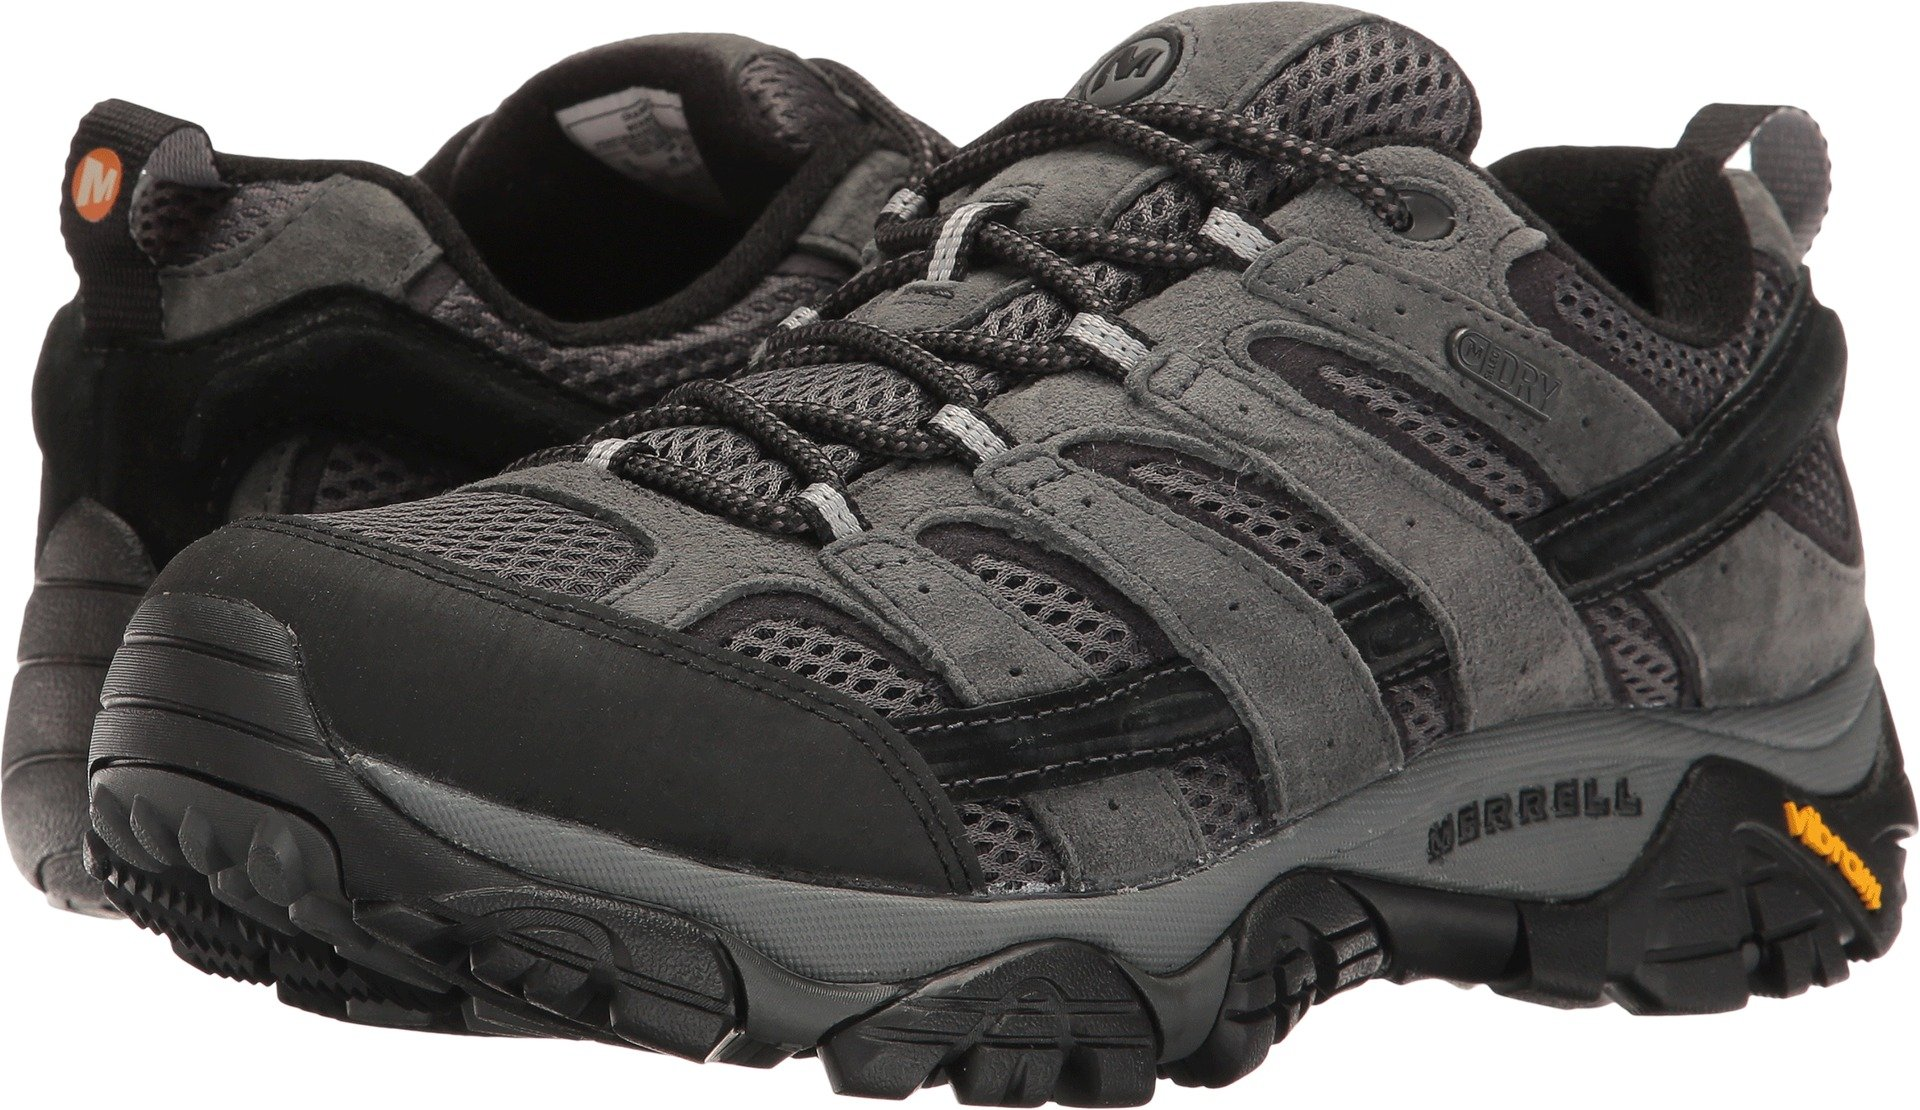 Merrell Men's Moab 2 Waterproof Hiking Shoe, Granite, 10.5 M US by Merrell